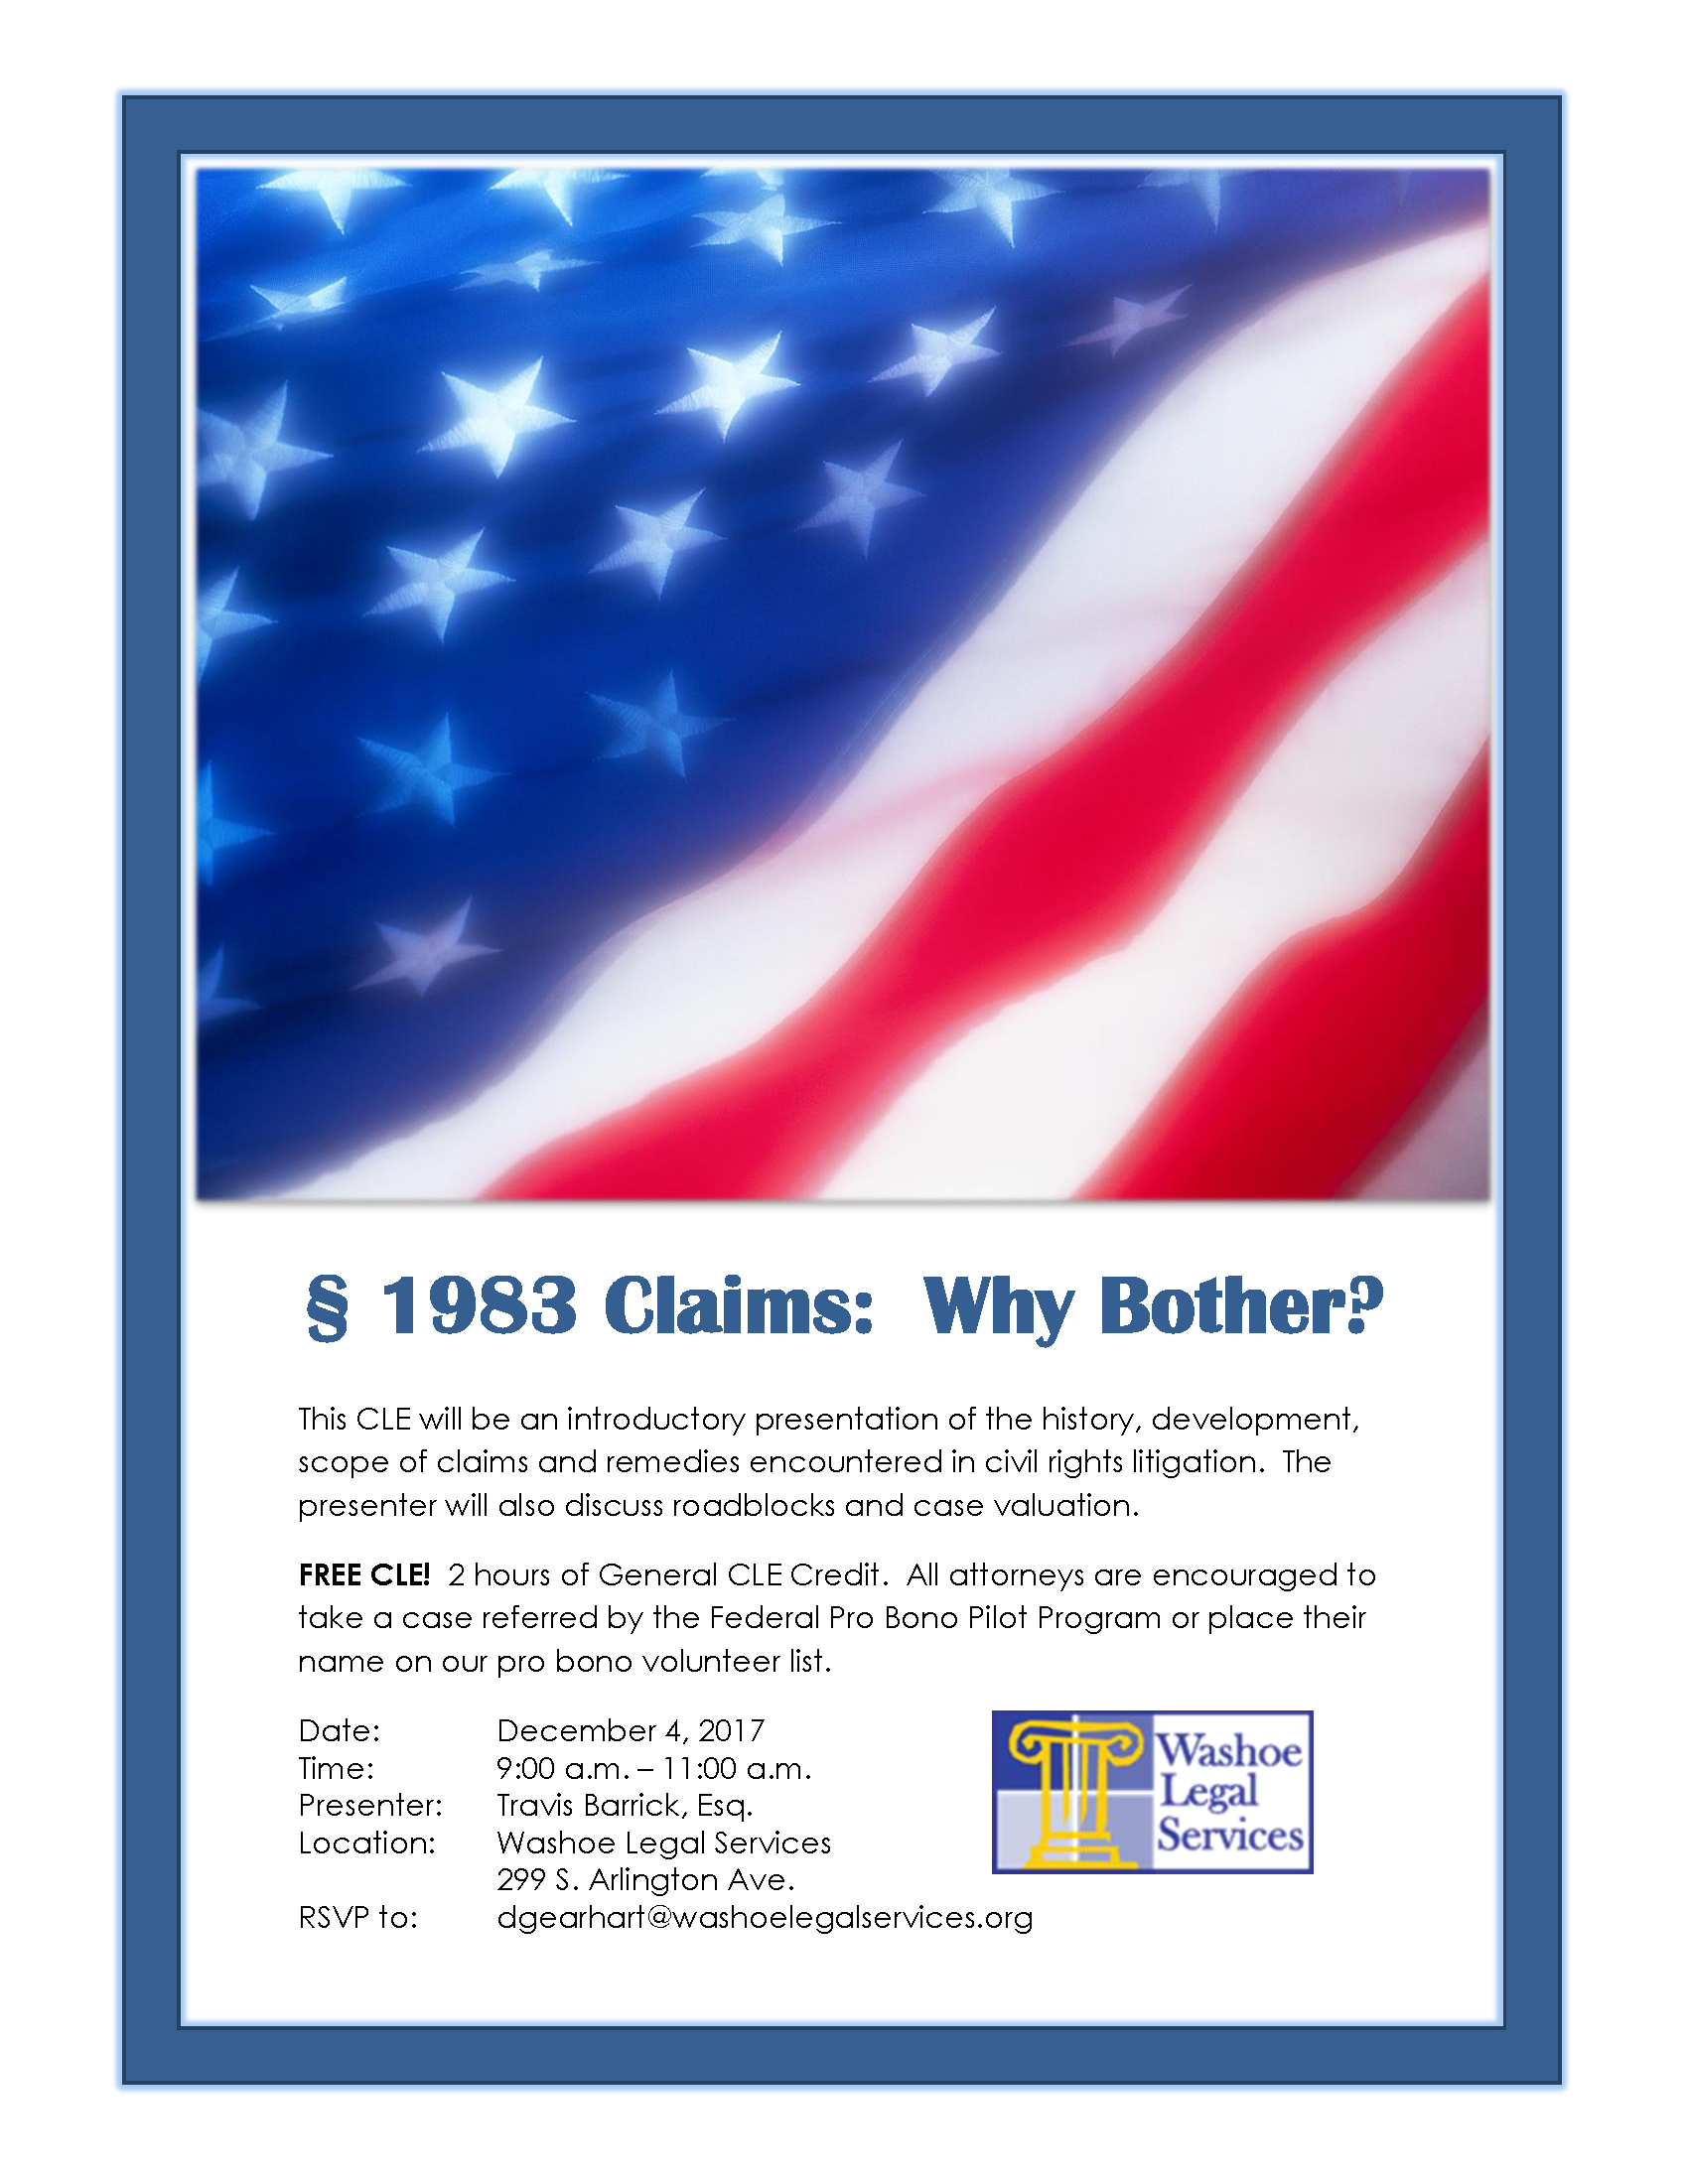 Free CLE training seminar - 1983 Claims